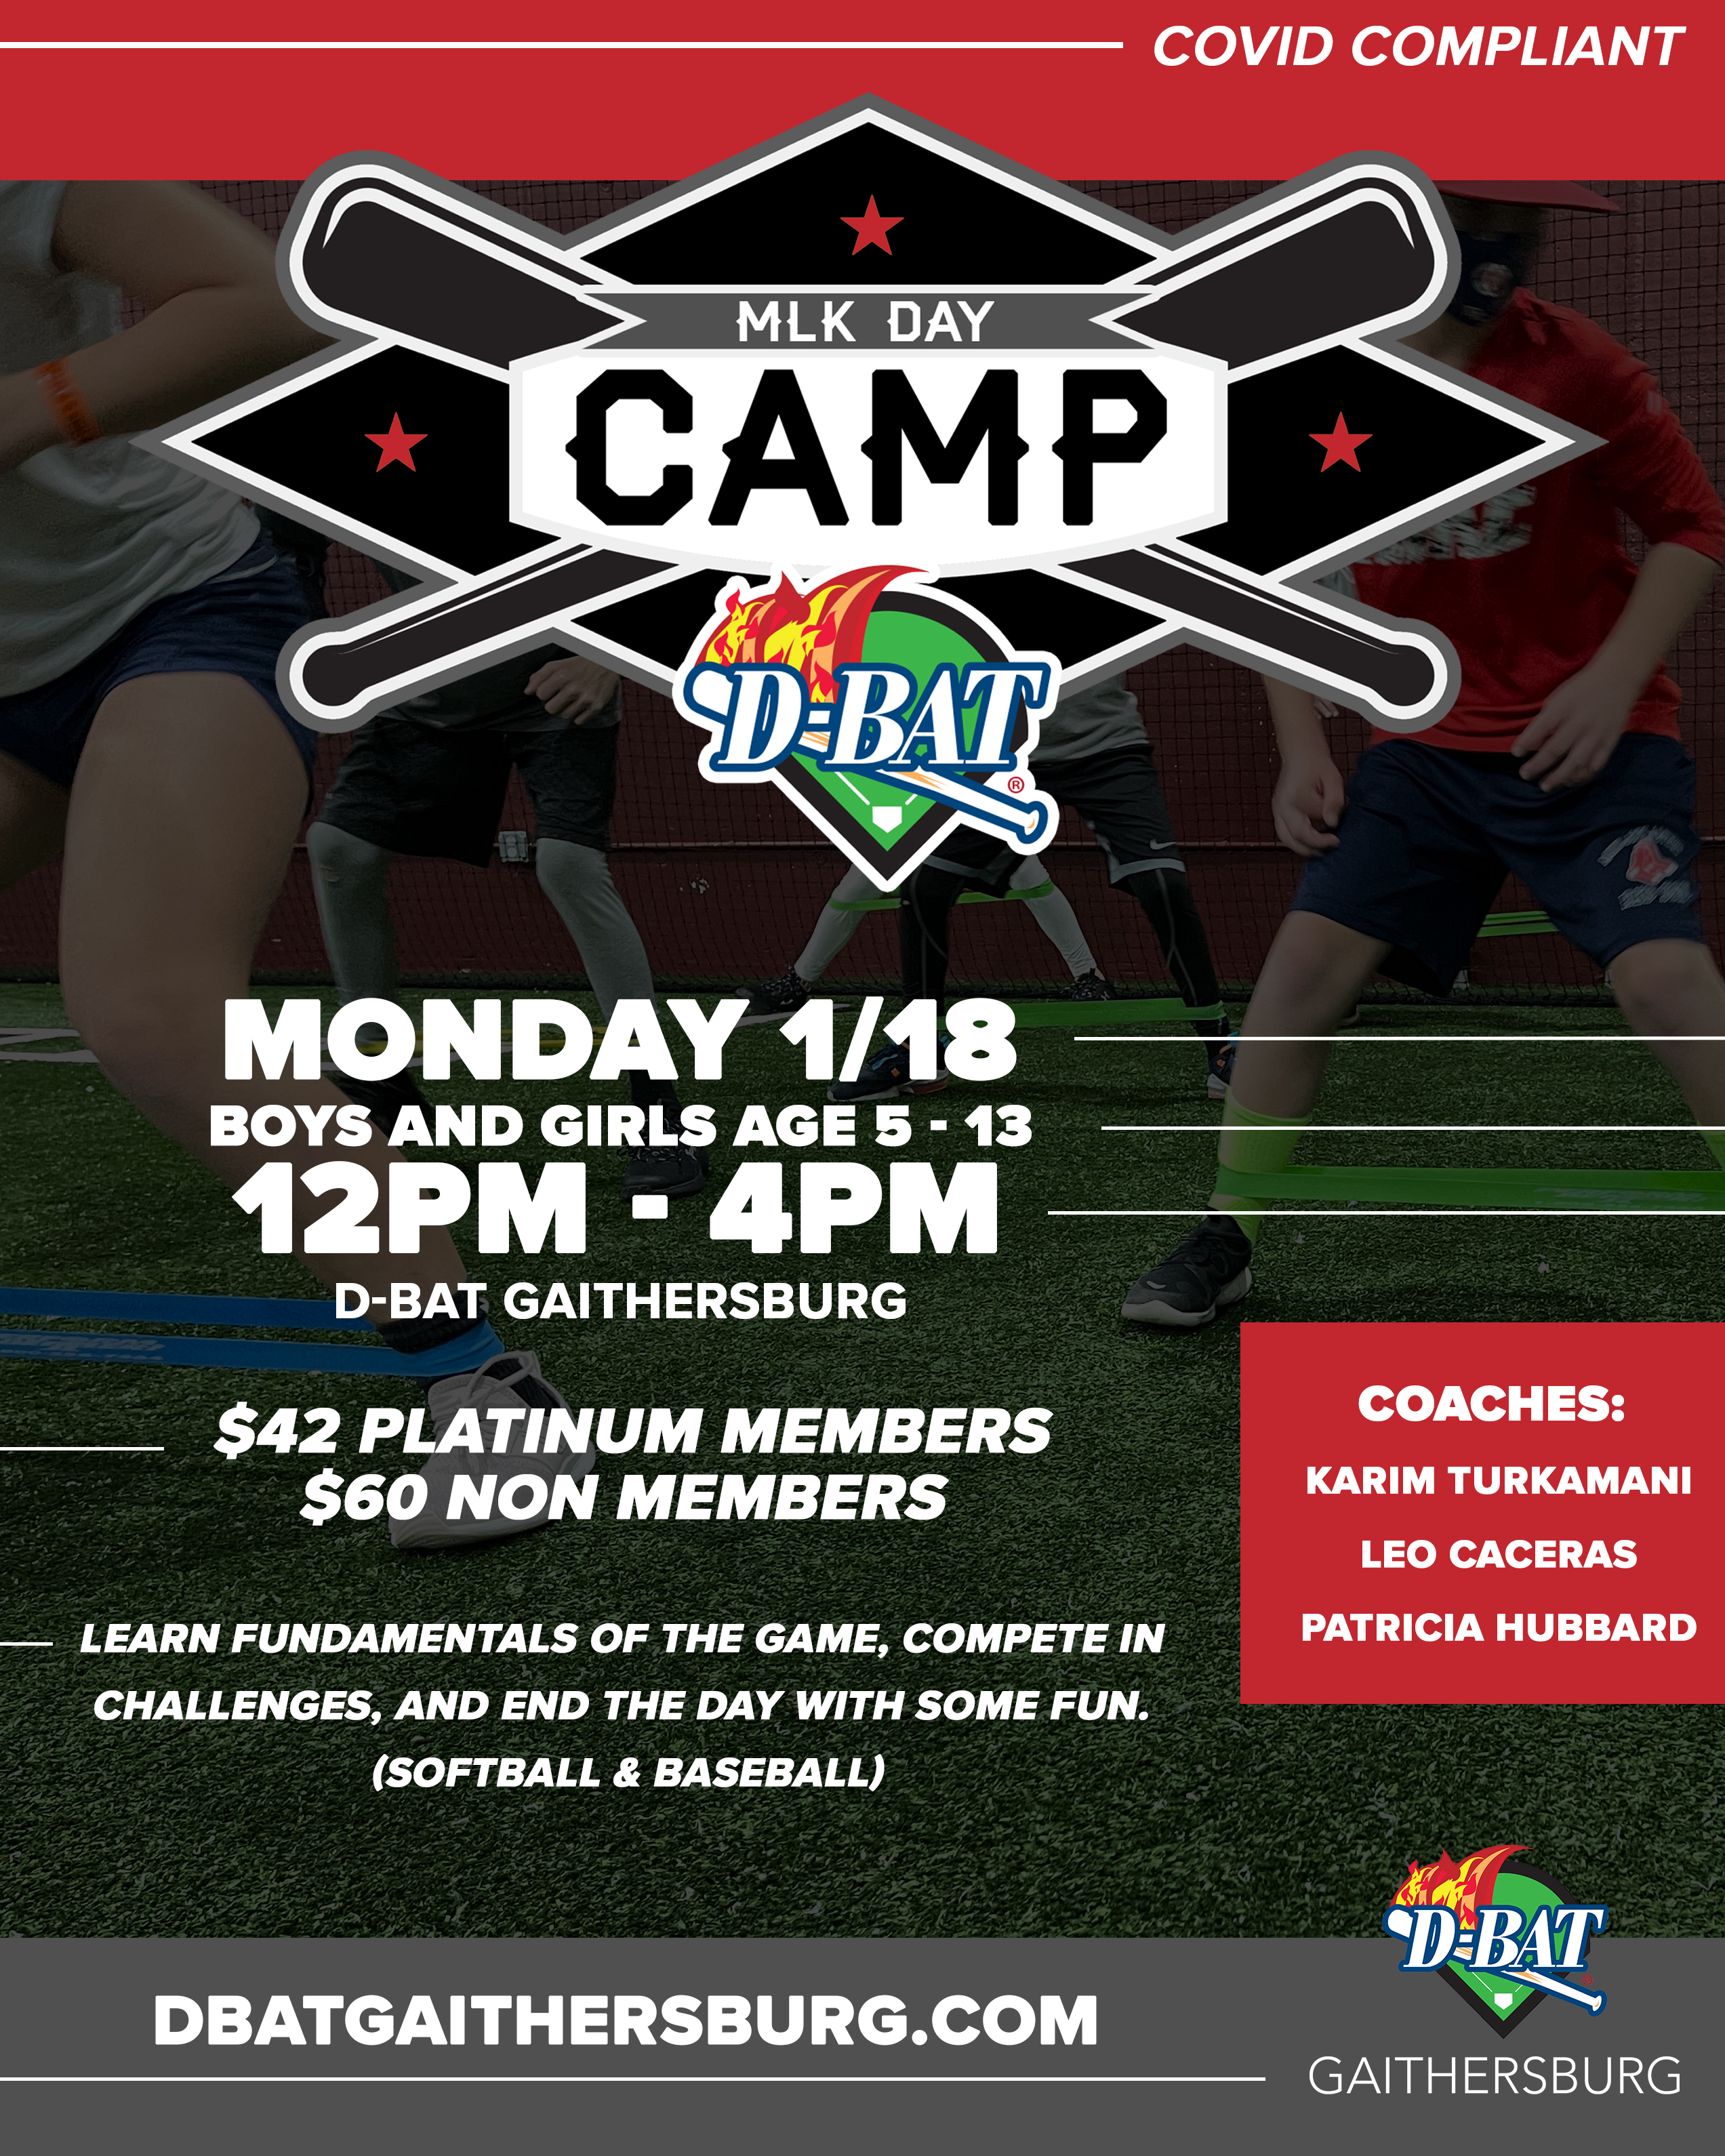 MLK Day Camp - Click to register